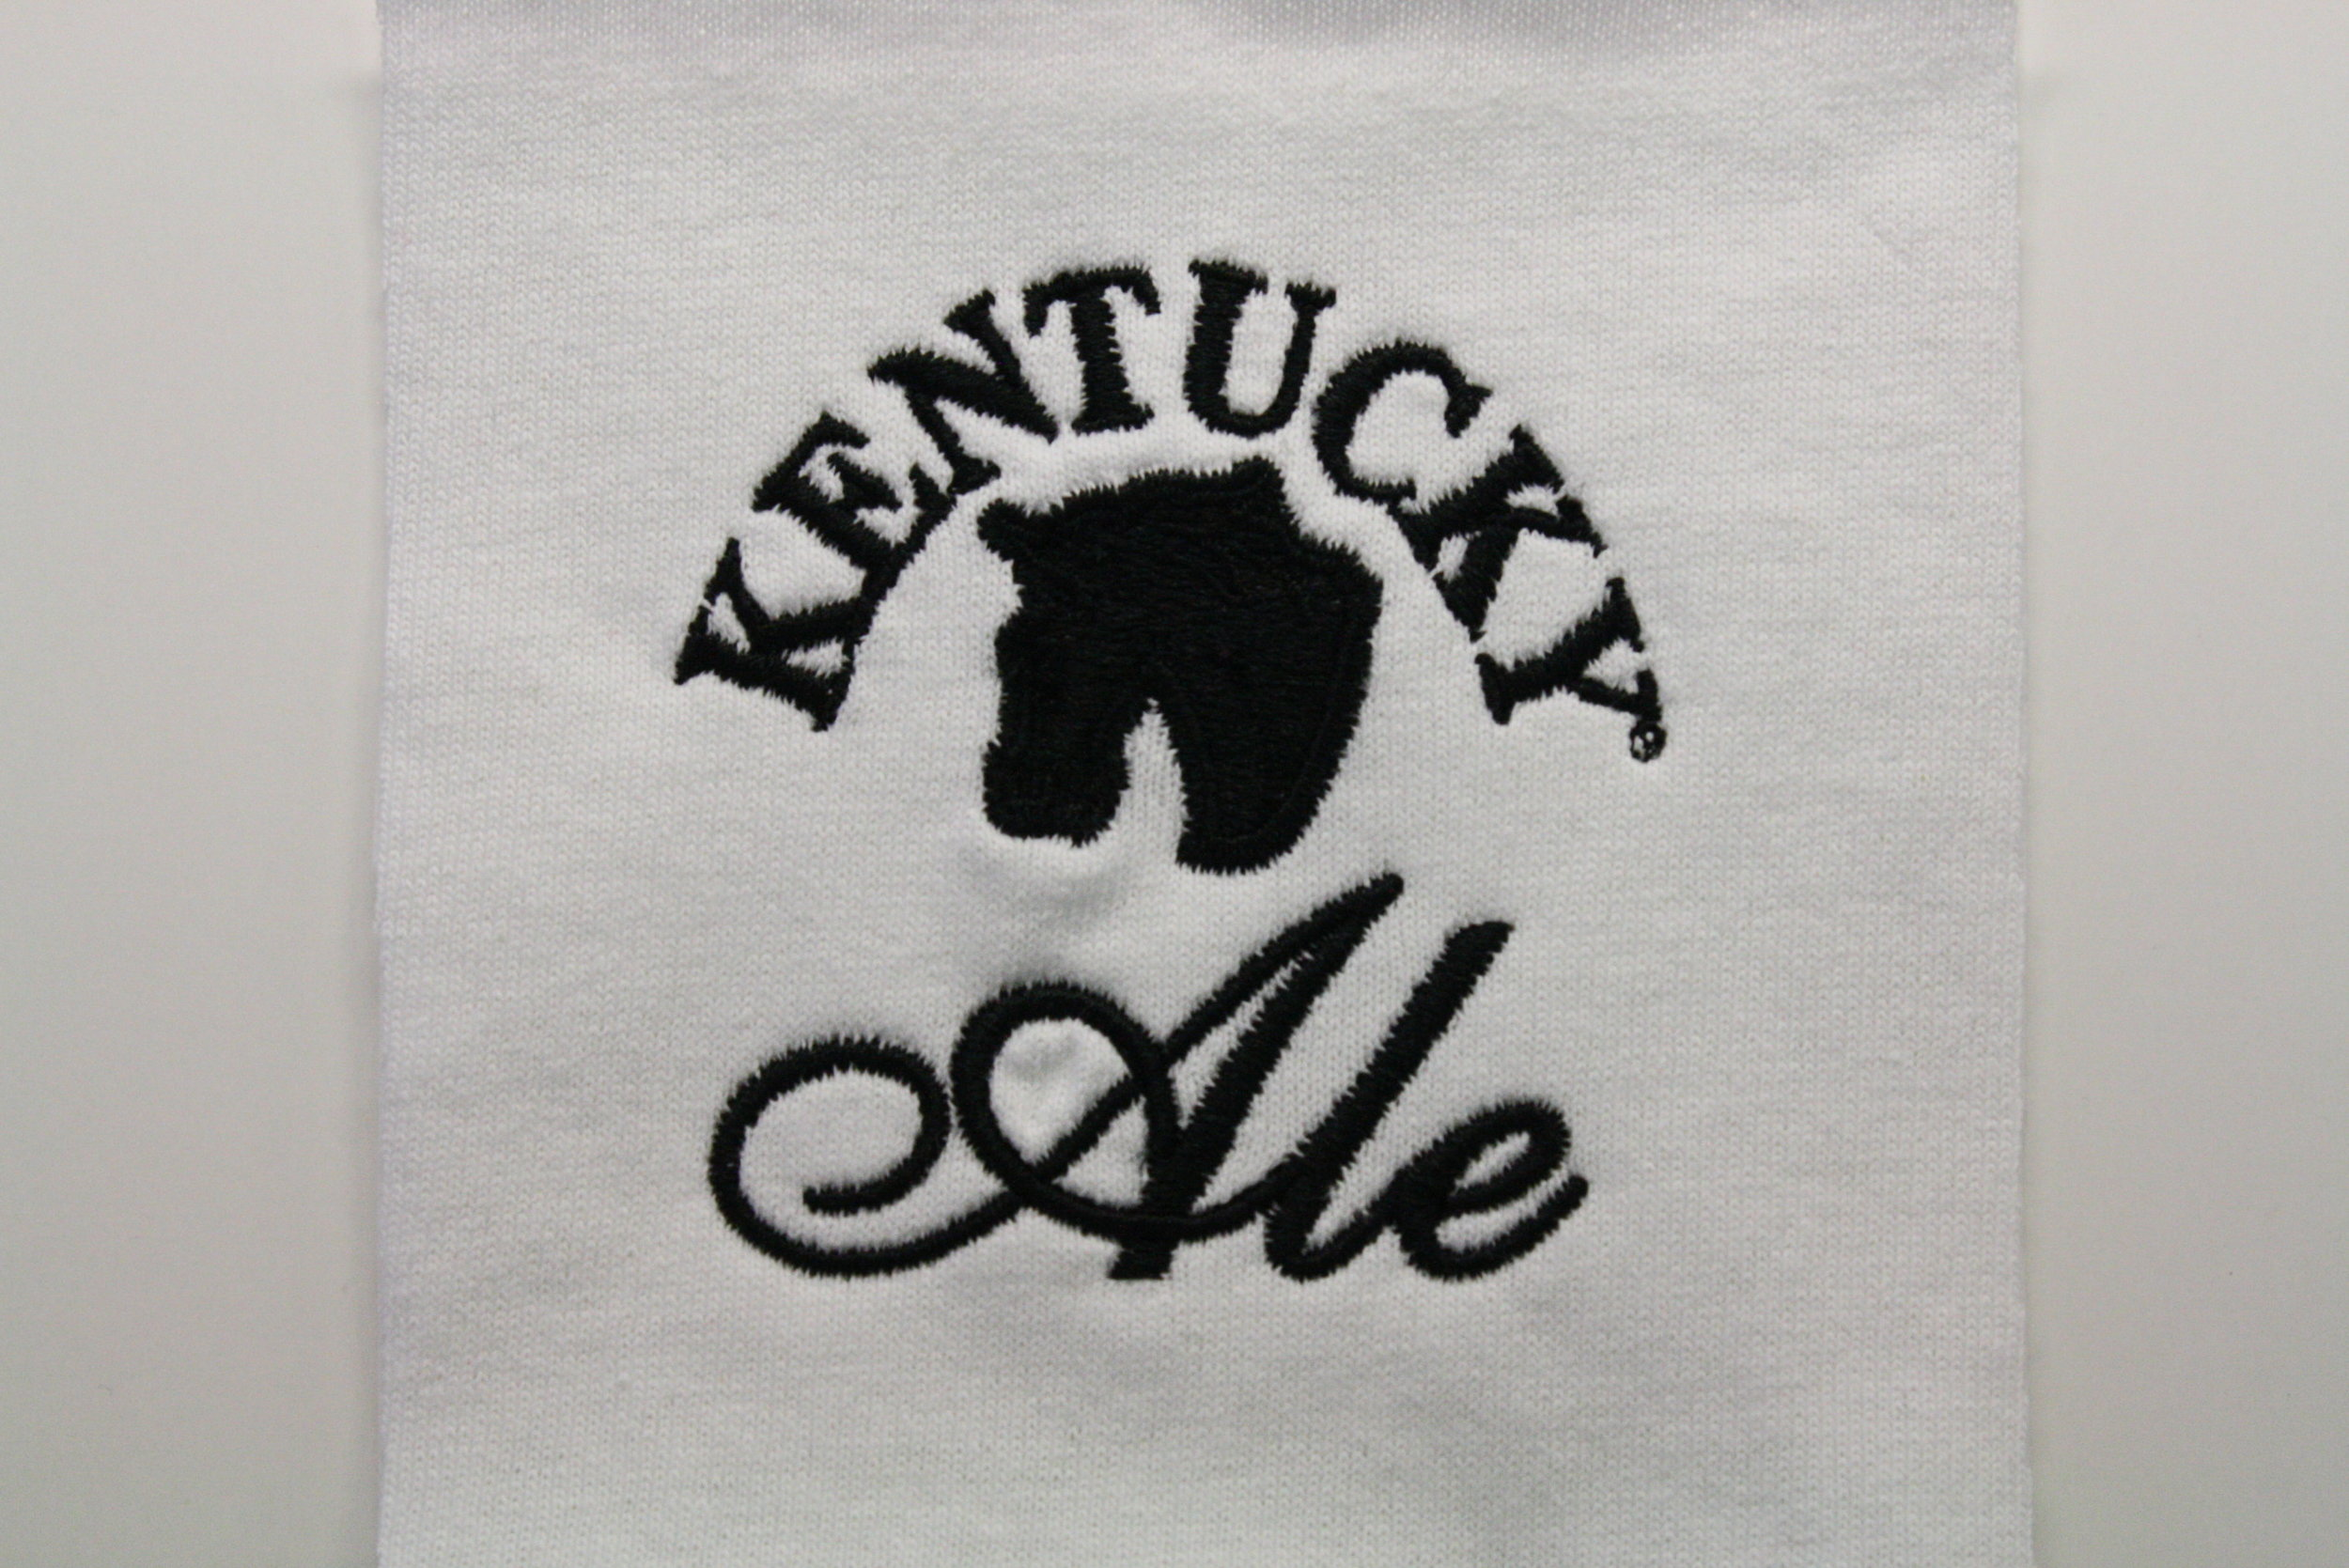 Simple and sleek embroidery sample for Kentucky Ale.